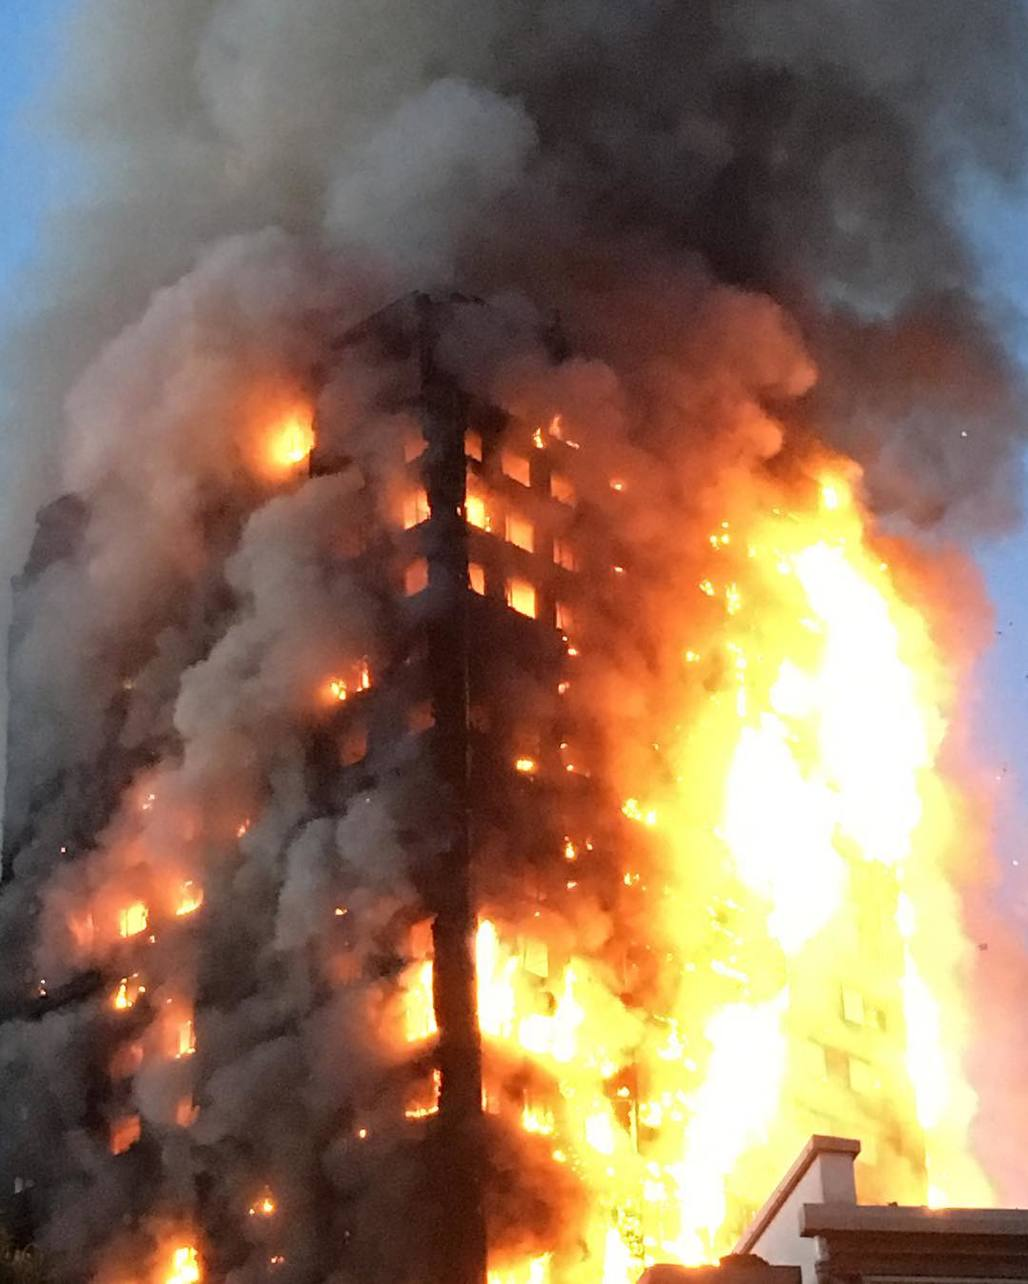 "The 24-story Grenfell Tower completely engulfed in flames as the sun rises over London on Wednesday morning. Image via <a href=""https://www.instagram.com/mrgeorgeclarke/"">@mrgeorgeclarke</a> on Instagram."